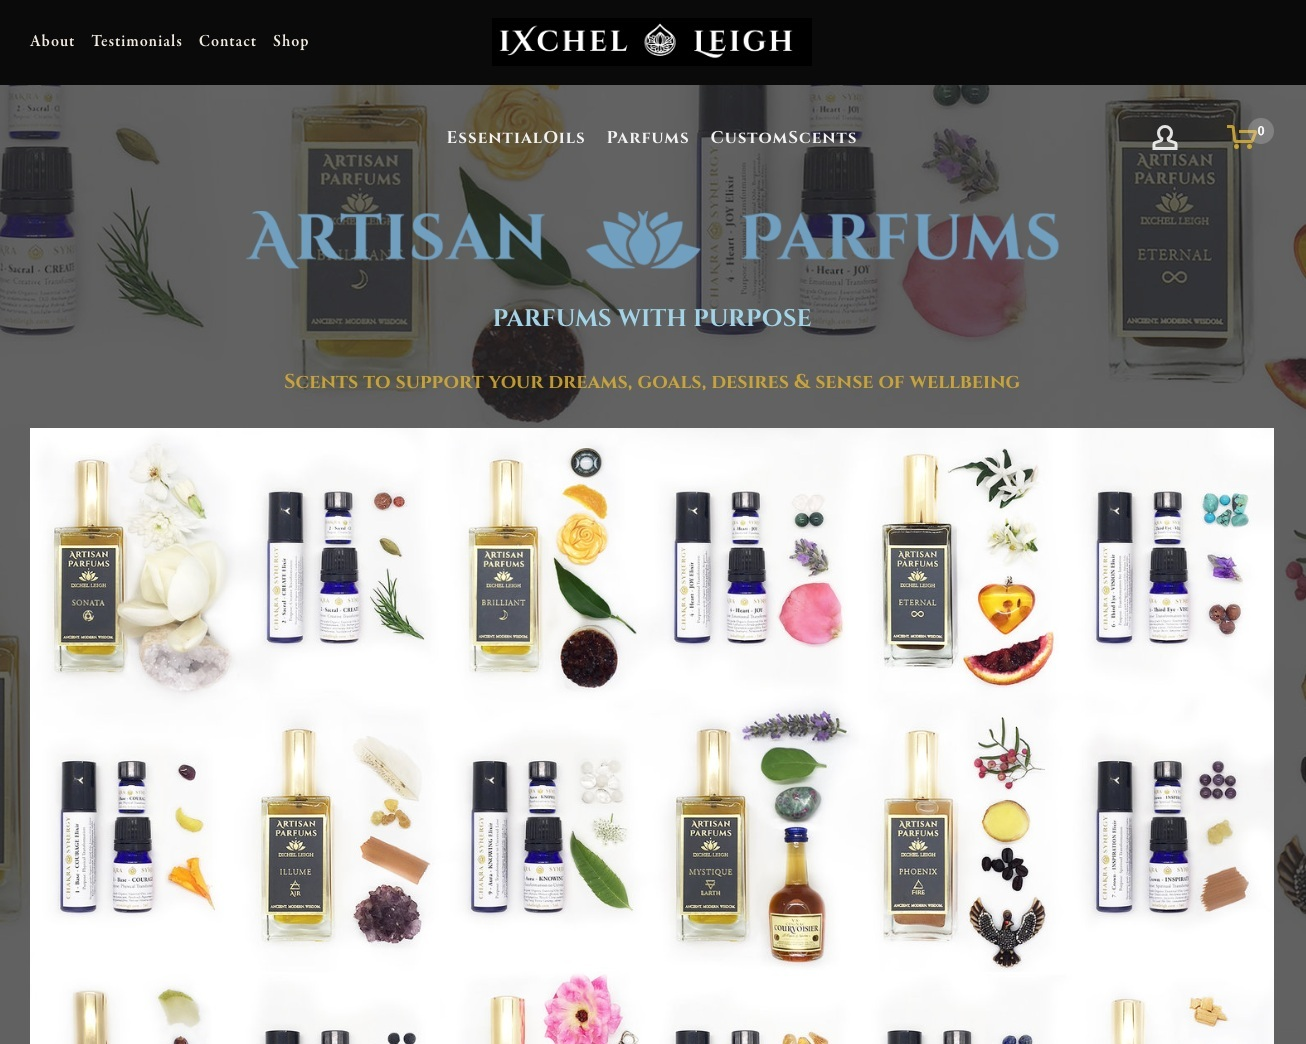 COUTURE SCENTS